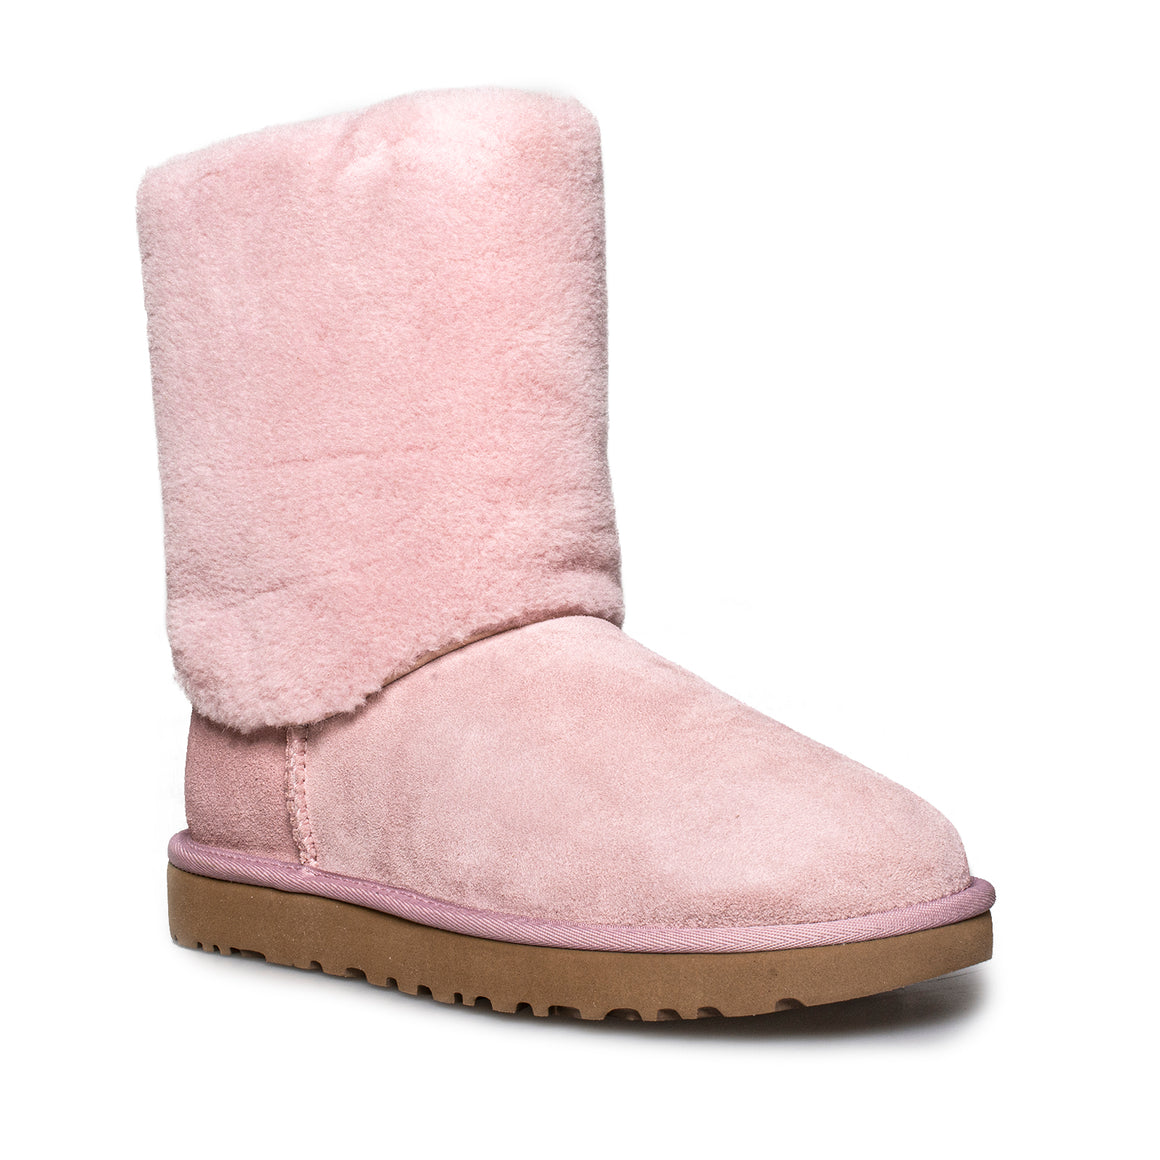 UGG Classic Short II Sherpa Cuff Pink Crystal Boots - Women's